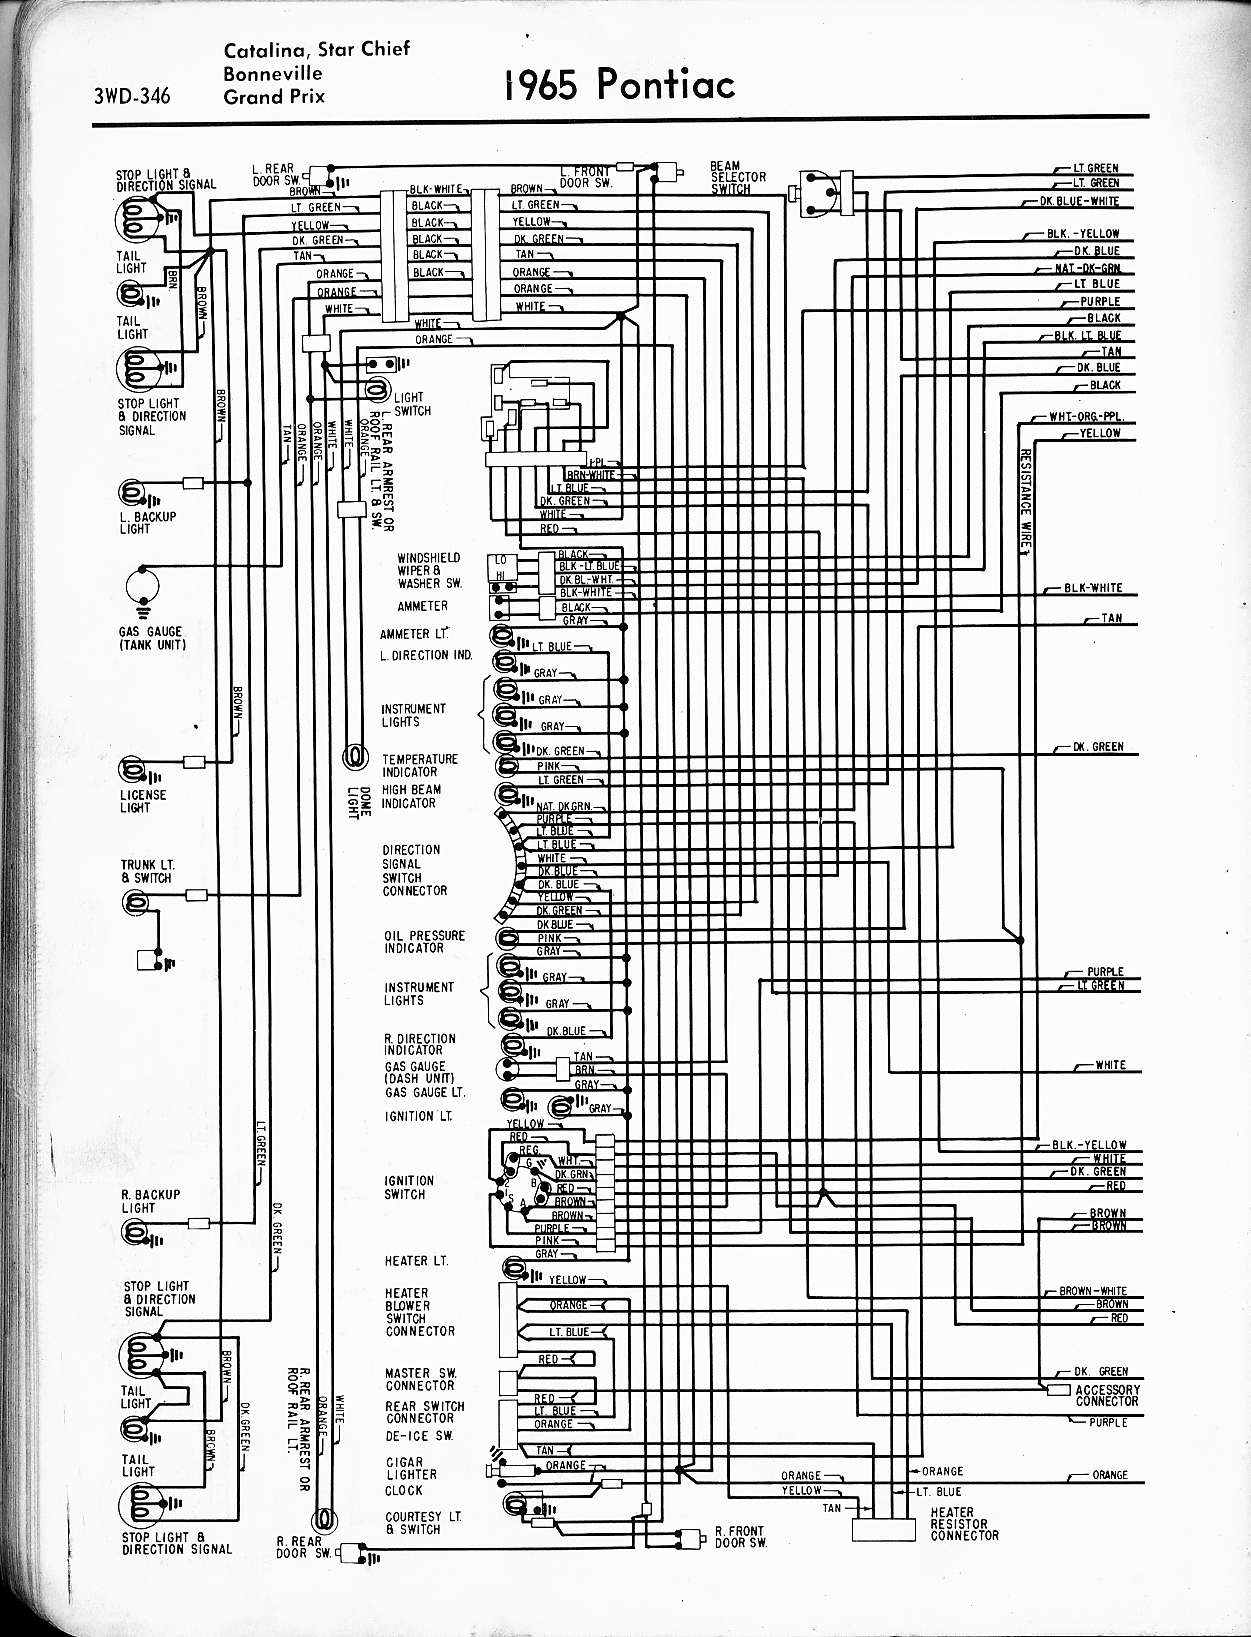 MWire5765 346 68 bonneville wiring diagram 100 images 1965 pontiac wiring 68 beetle wiring diagram at honlapkeszites.co